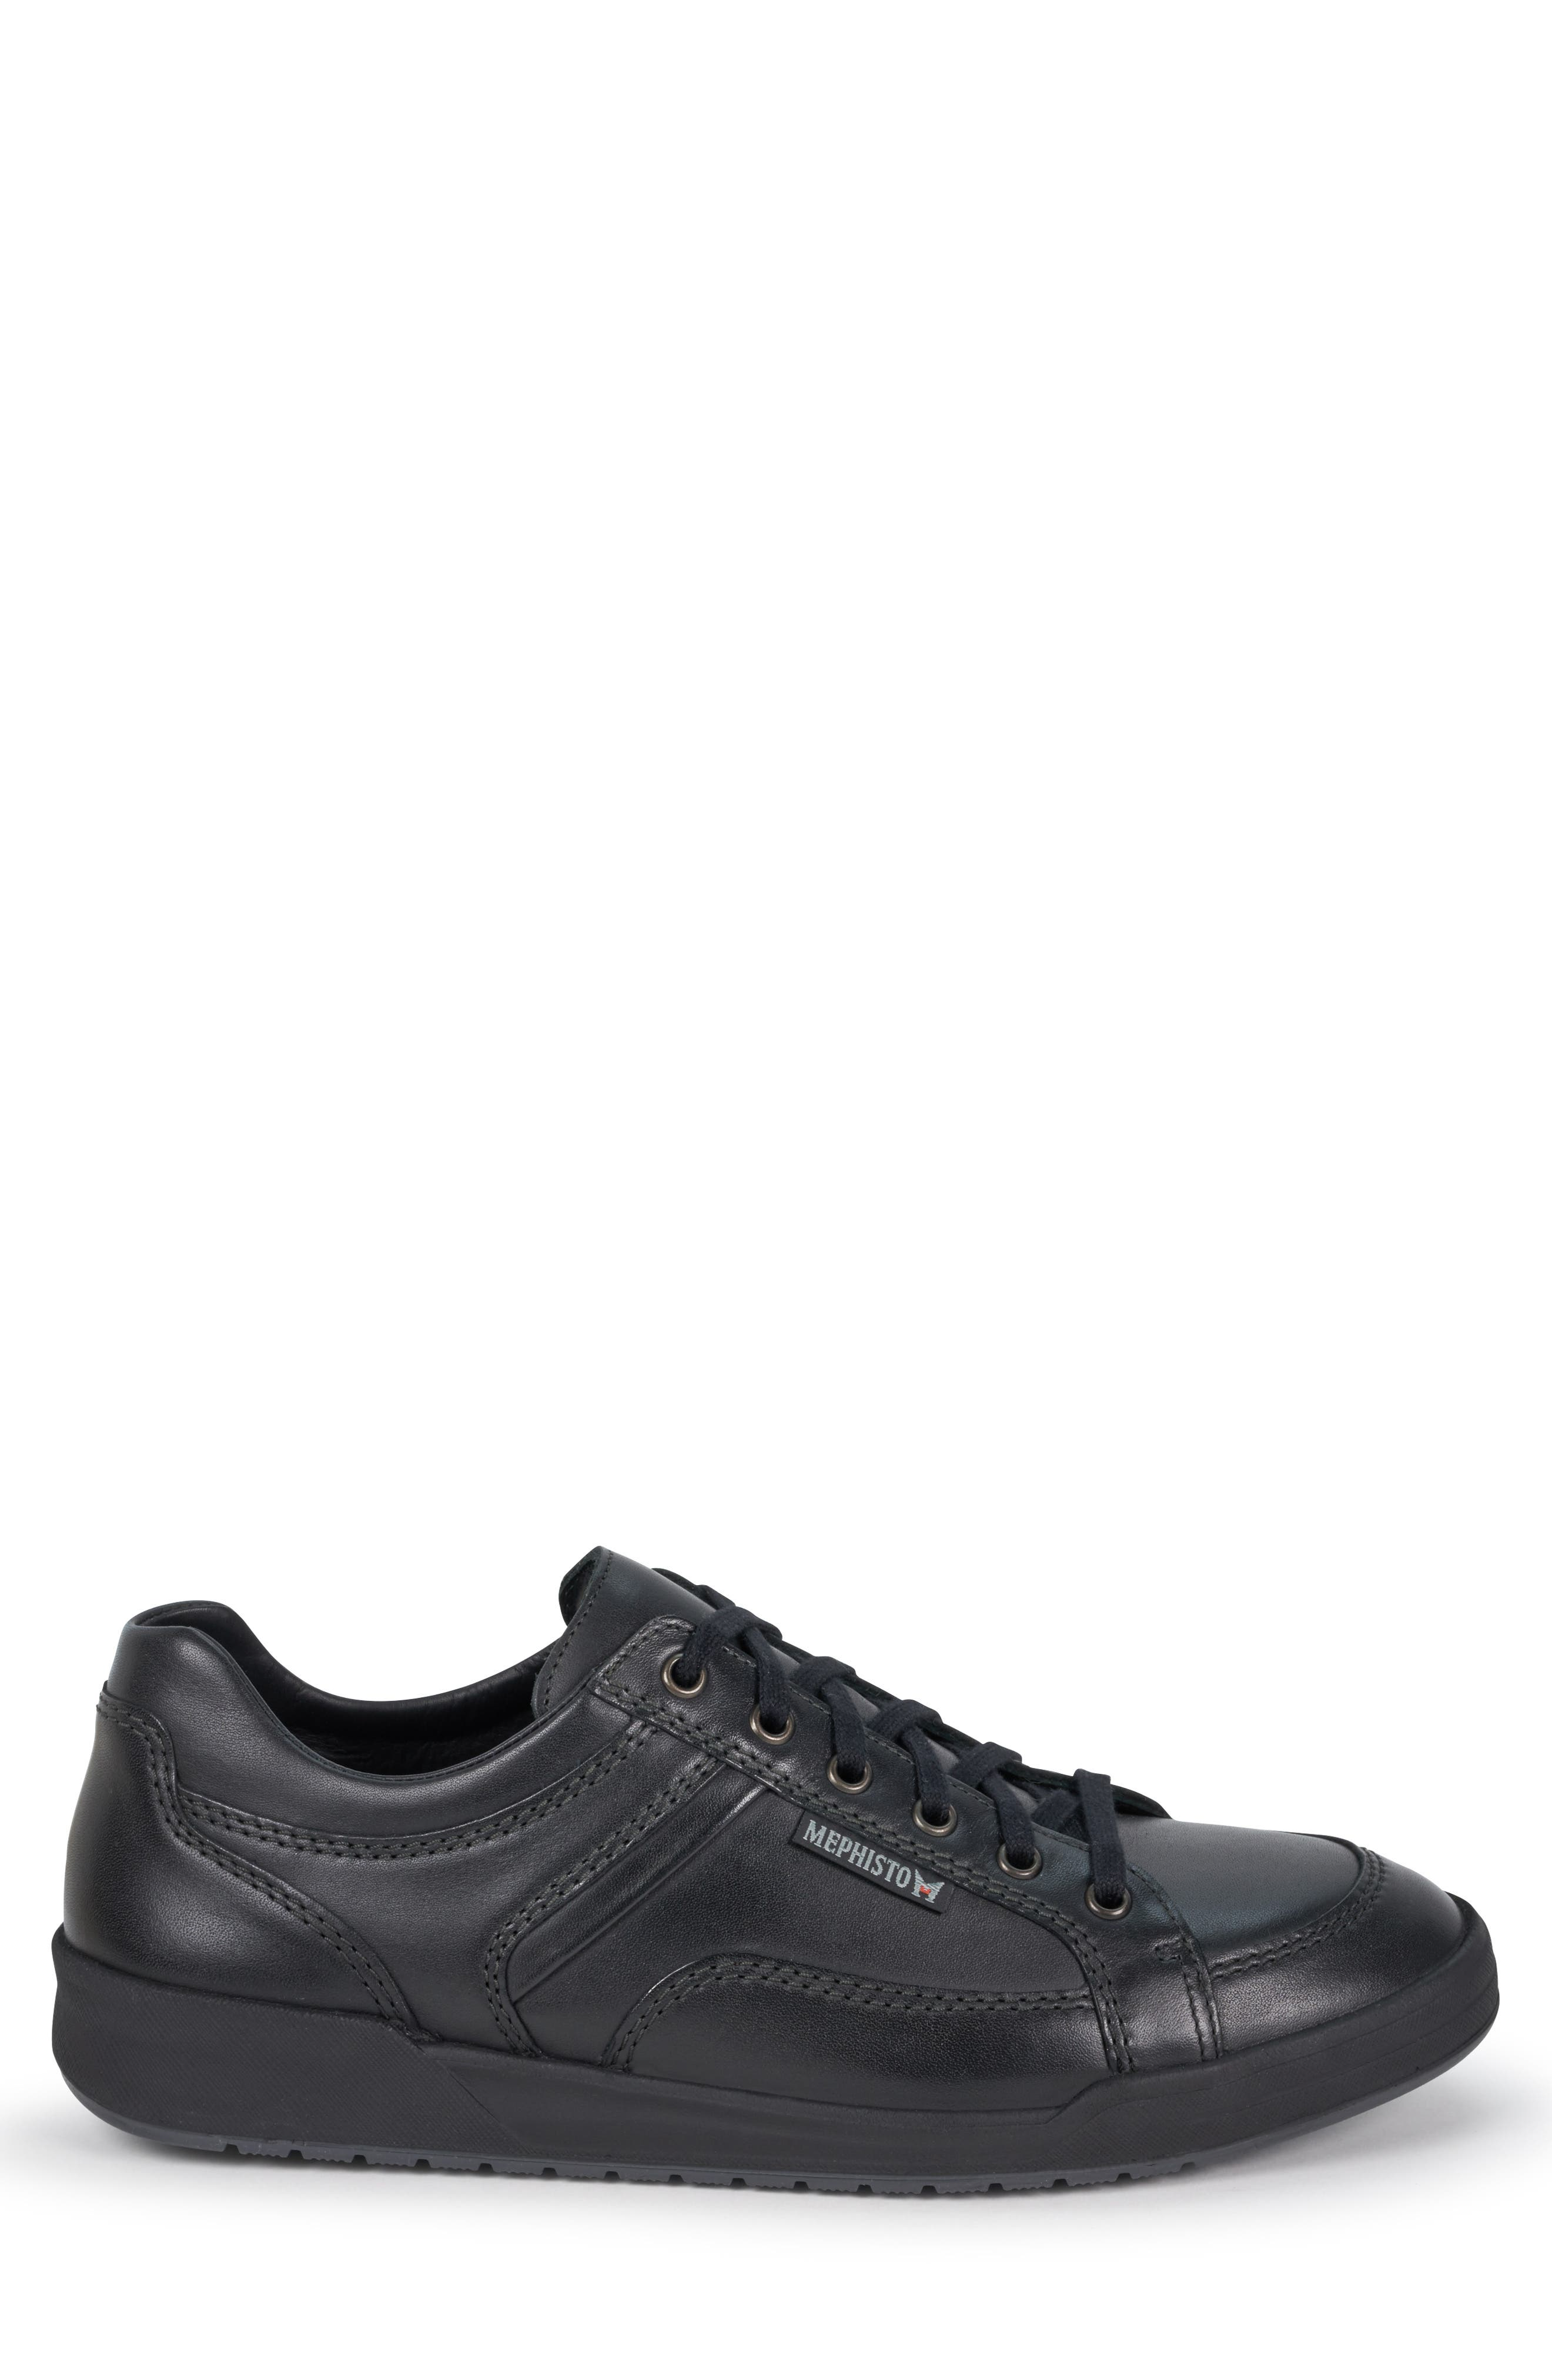 MEPHISTO, 'Rodrigo' Sneaker, Alternate thumbnail 3, color, BLACK/BLACK LEATHER